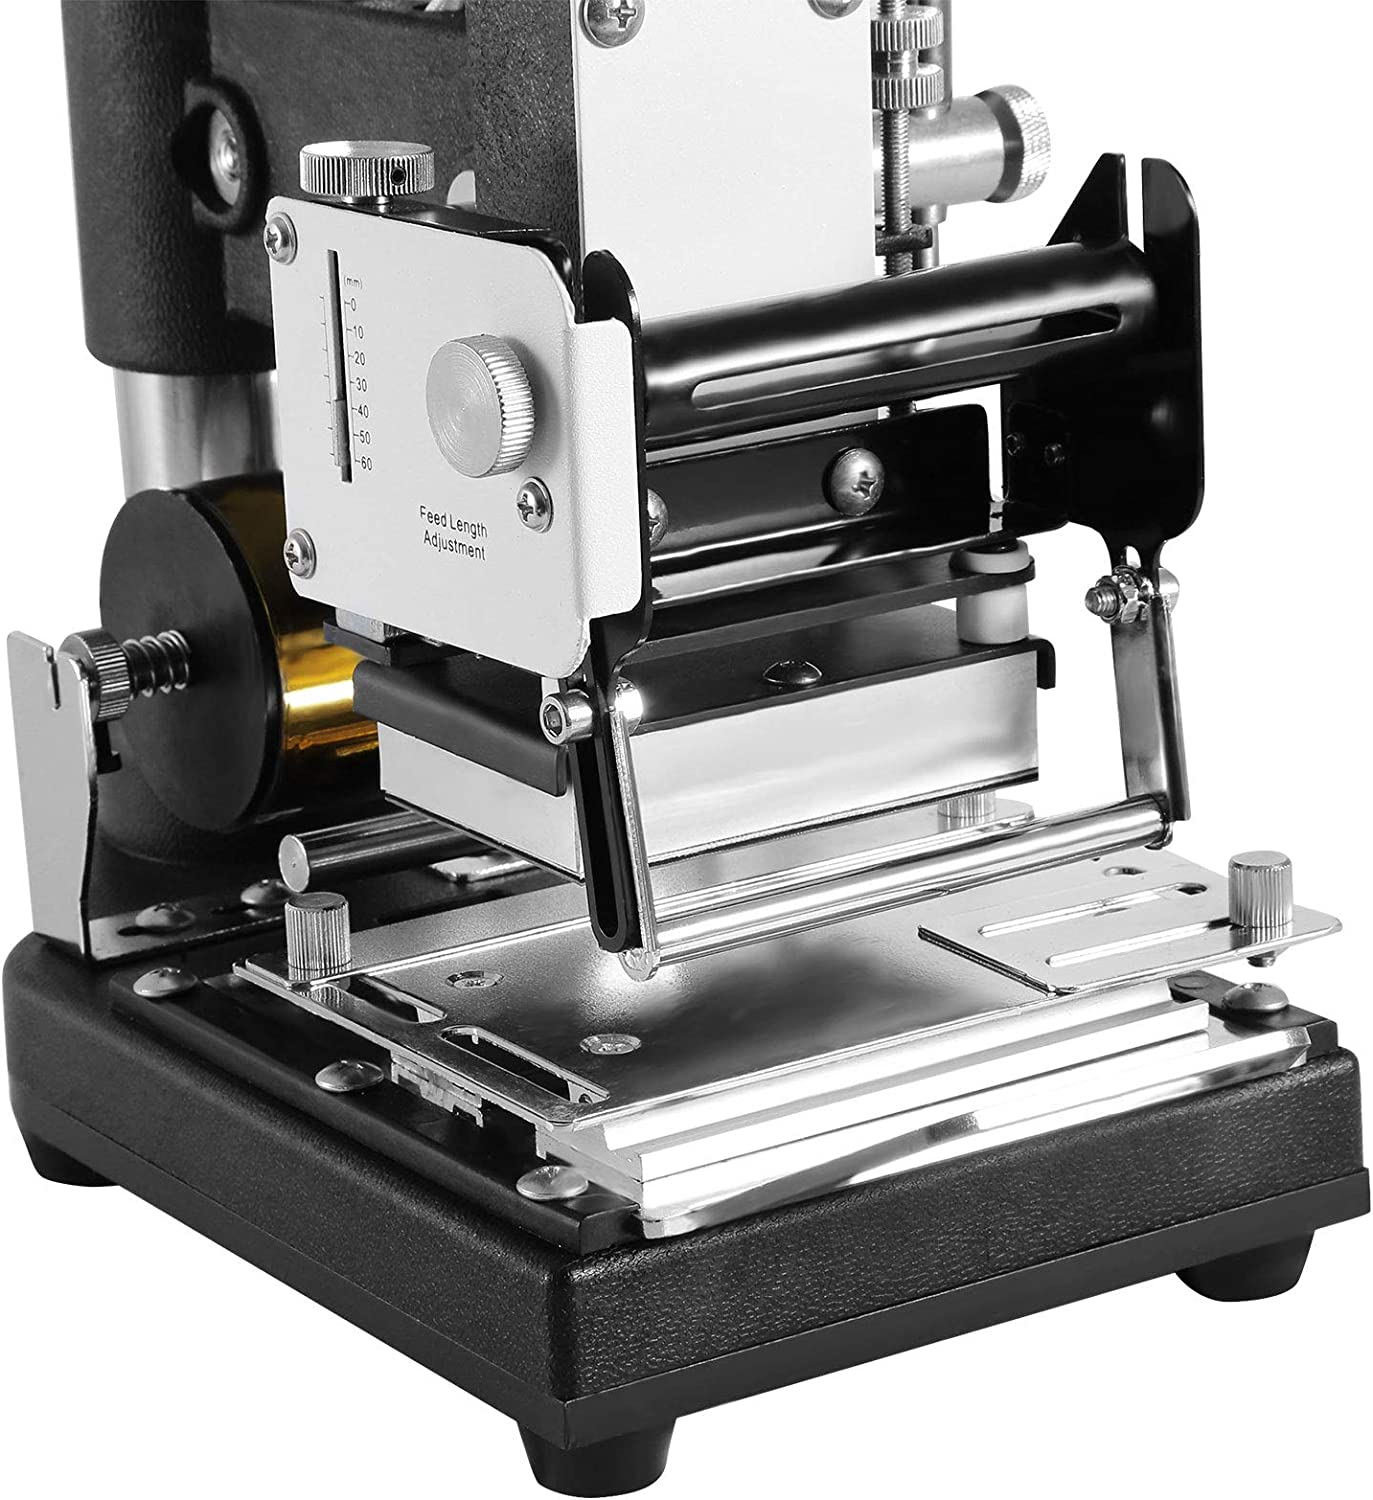 300W FORAVER 300W Hot Foil Stamping Machine Manual Tipper Stamper Bronzing for PVC ID Credit Card with a Free Foil Paper